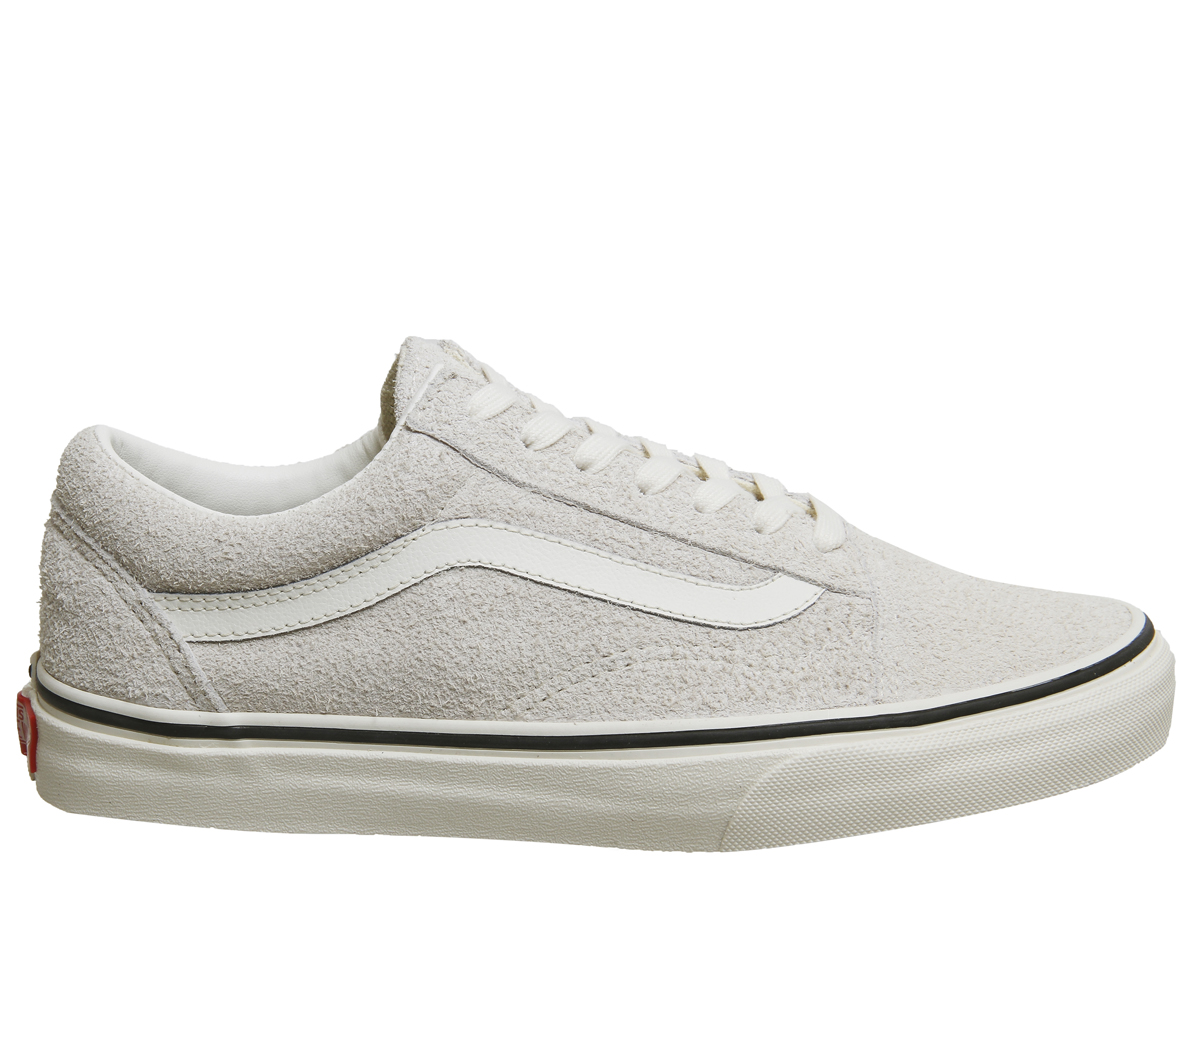 3d2a4e573490c4 Sentinel Mens Vans Old Skool Trainers GREY FUZZY SUEDE Trainers Shoes